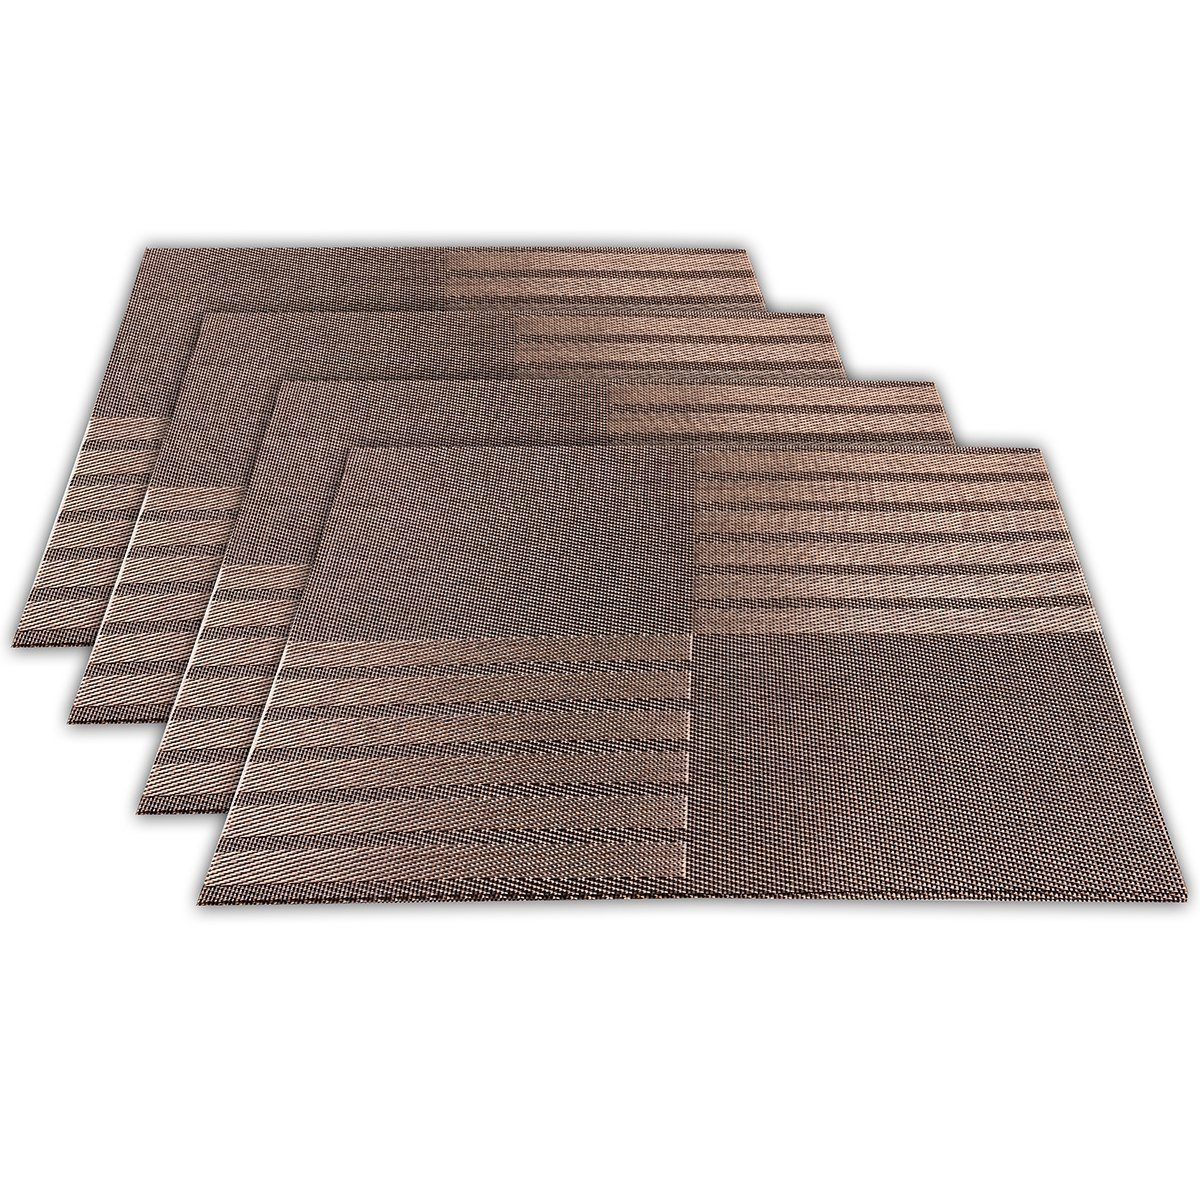 Amazon: Placemats For Table Heatresistant, Arricastle Washable Stain Resistant Woven Vinyl Kitchen Pvc Nonslip Insulation Placemats Set Of  4(brown